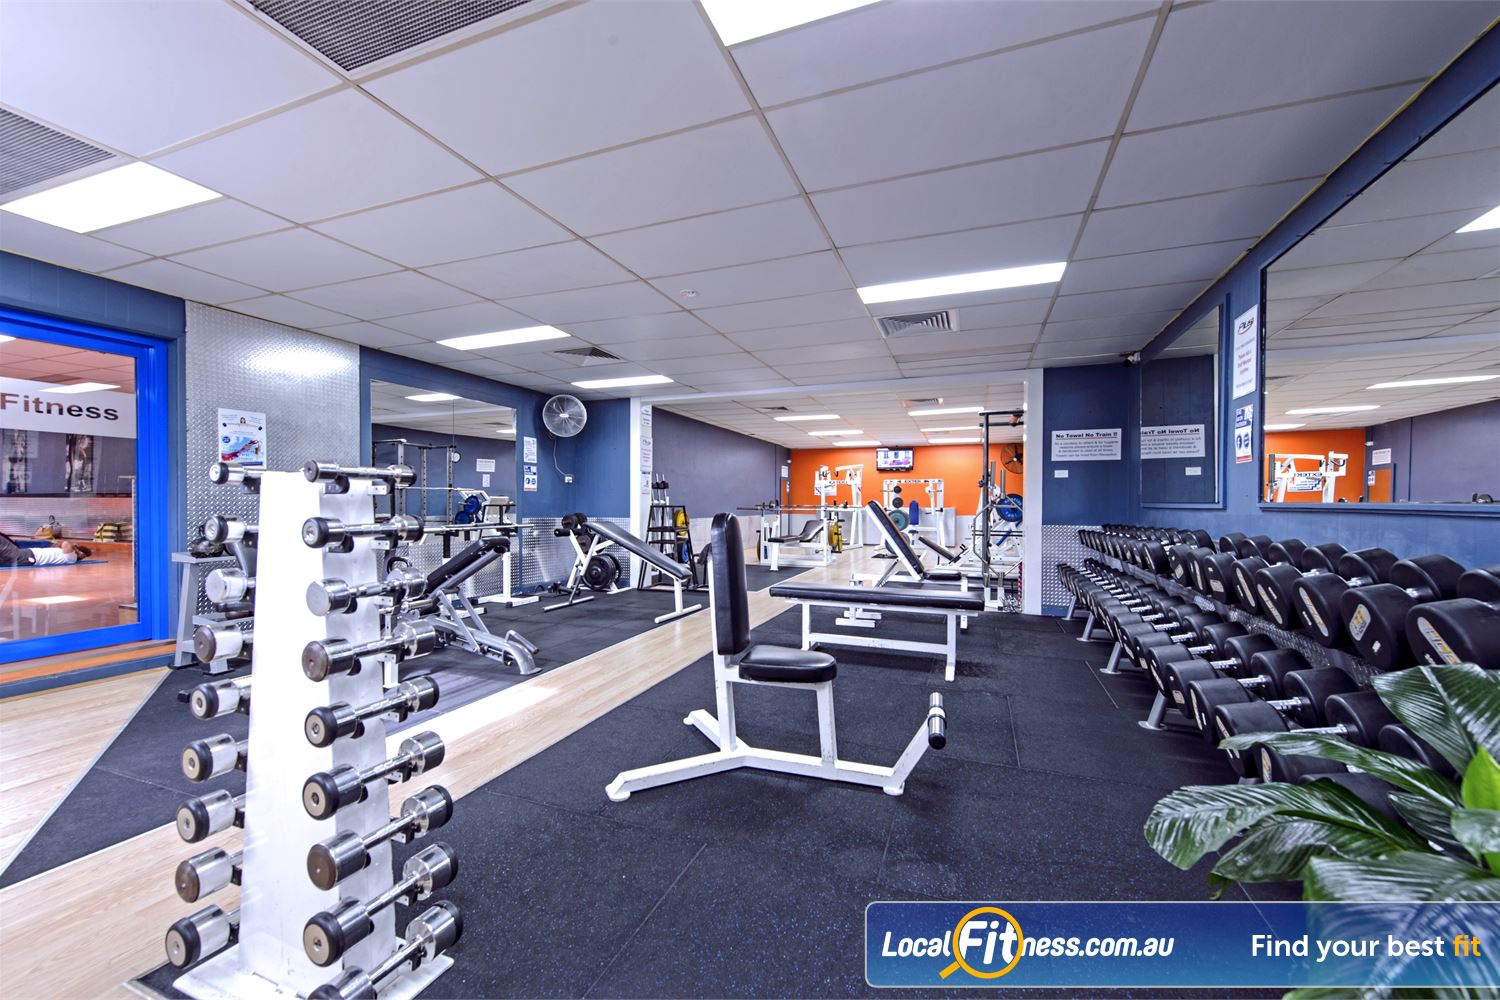 Plus Fitness Health Clubs Northmead Our fully equipped free-weights and strength training area.